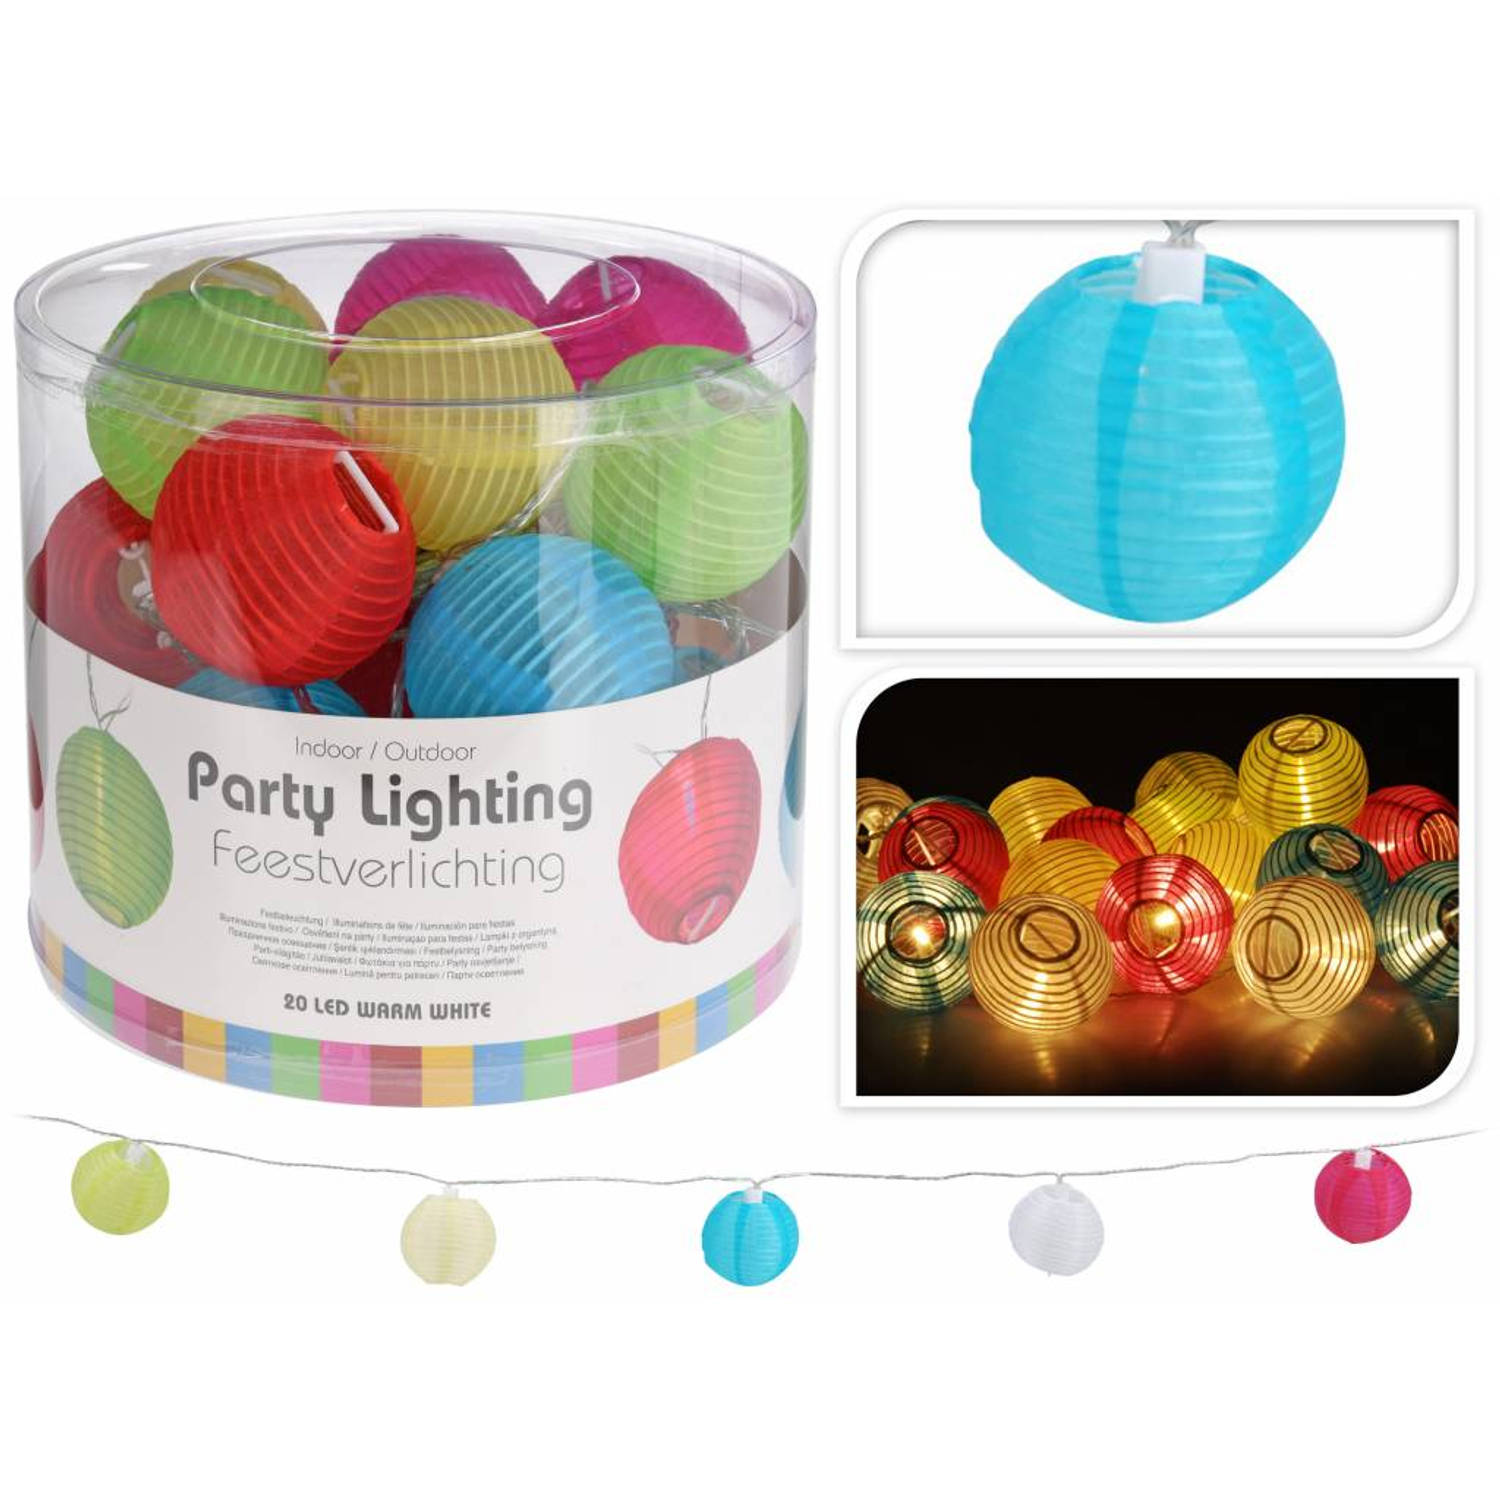 Party Lighting Feestverlichting met 20 gekleurde LED Lampionnen